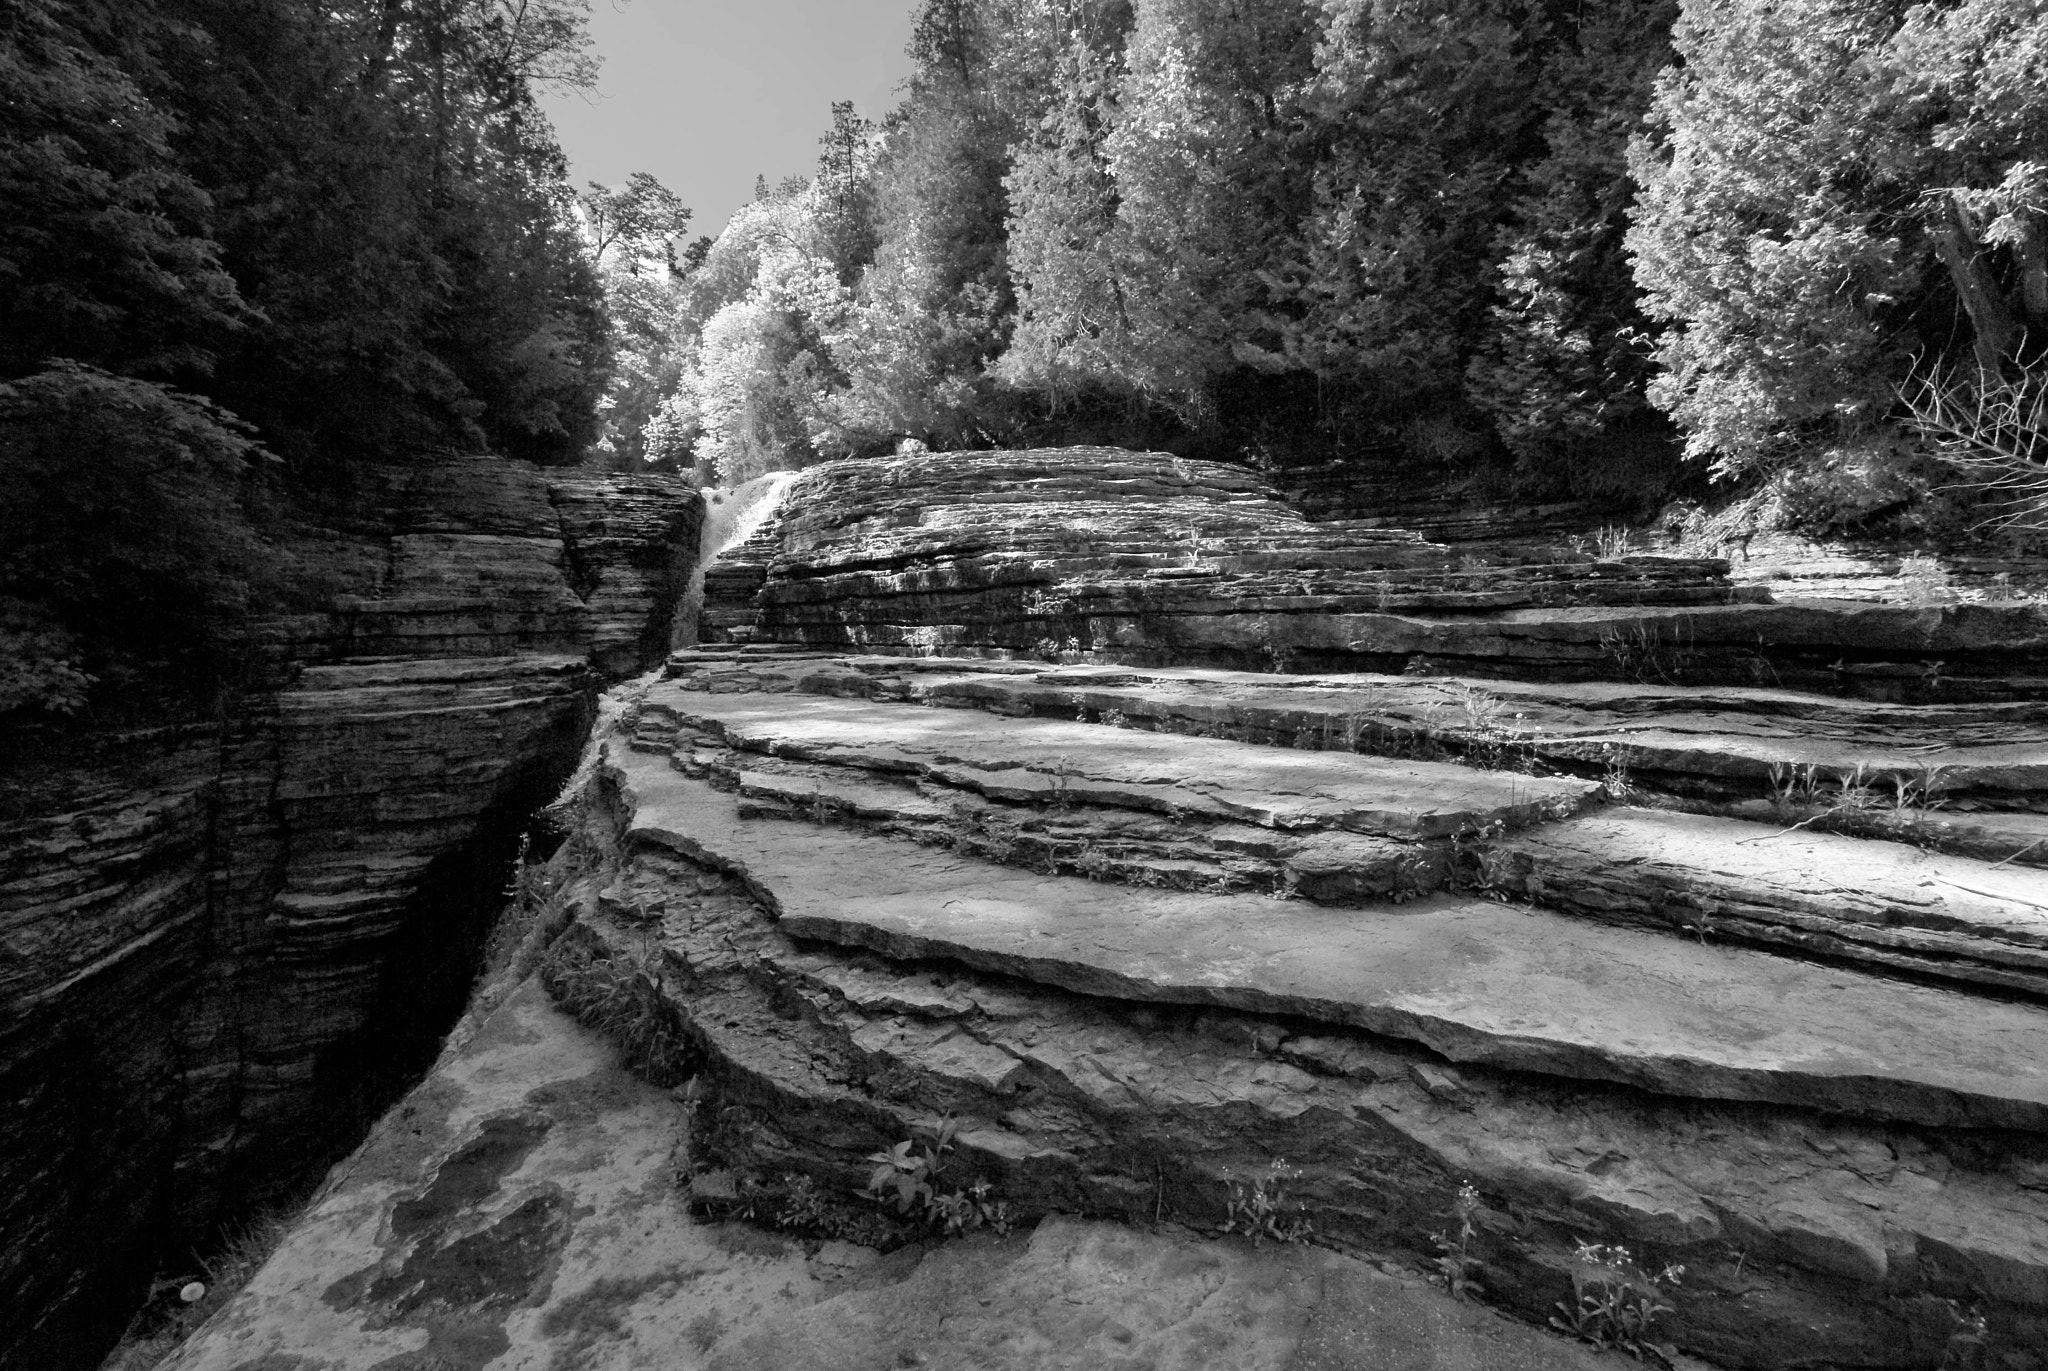 Photograph Whittaker Falls (Upper Falls Erosion) by Meagan Muncy on 500px